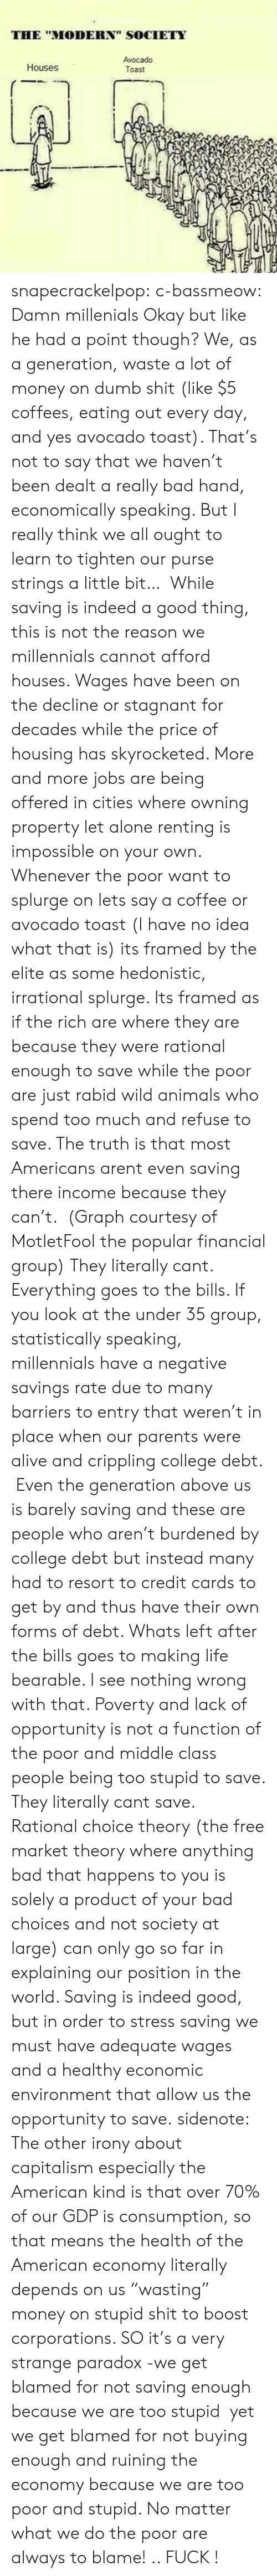 """Resort To: THE """"MODERN"""" SOCIETY  Avocado  Toast  Houses snapecrackelpop: c-bassmeow: Damn millenials Okay but like he had a point though? We, as a generation, waste a lot of money on dumb shit (like $5 coffees, eating out every day, and yes avocado toast). That's not to say that we haven't been dealt a really bad hand, economically speaking. But I really think we all ought to learn to tighten our purse strings a little bit…  While saving is indeed a good thing, this is not the reason we millennials cannot afford houses. Wages have been on the decline or stagnant for decades while the price of housing has skyrocketed. More and more jobs are being offered in cities where owning property let alone renting is  impossible on your own. Whenever the poor want to splurge on lets say a coffee or avocado toast (I have no idea what that is) its framed by the elite as some hedonistic, irrational splurge. Its framed as if the rich are where they are because they were rational enough to save while the poor are just rabid wild animals who spend too much and refuse to save. The truth is that most Americans arent even saving there income because they can't.(Graph courtesy of MotletFool the popular financial group) They literally cant. Everything goes to the bills. If you look at the under 35 group, statistically speaking, millennials have a negative savings rate due to many barriers to entry that weren't in place when our parents were alive and crippling college debt. Even the generation above us is barely saving and these are people who aren't burdened by college debt but instead many had to resort to credit cards to get by and thus have their own forms of debt. Whats left after the bills goes to making life bearable. I see nothing wrong with that. Poverty and lack of opportunity is not a function of the poor and middle class people being too stupid to save. They literally cant save. Rational choice theory (the free market theory where anything bad that happens to you is solely a p"""